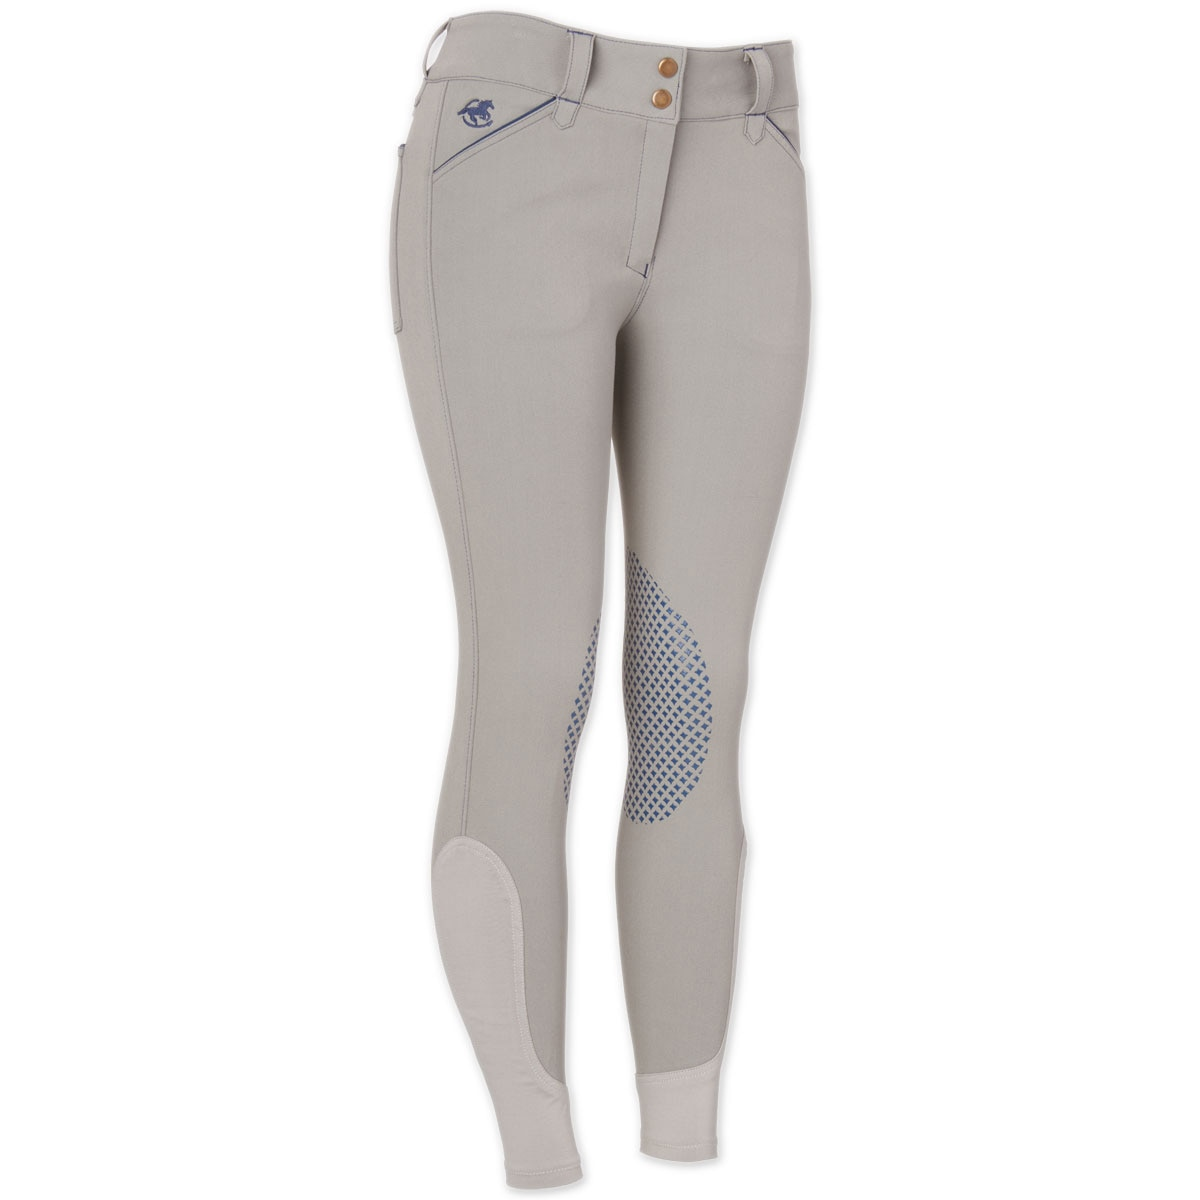 Piper Breeches by SmartPak - Silicone Grip Knee Patch